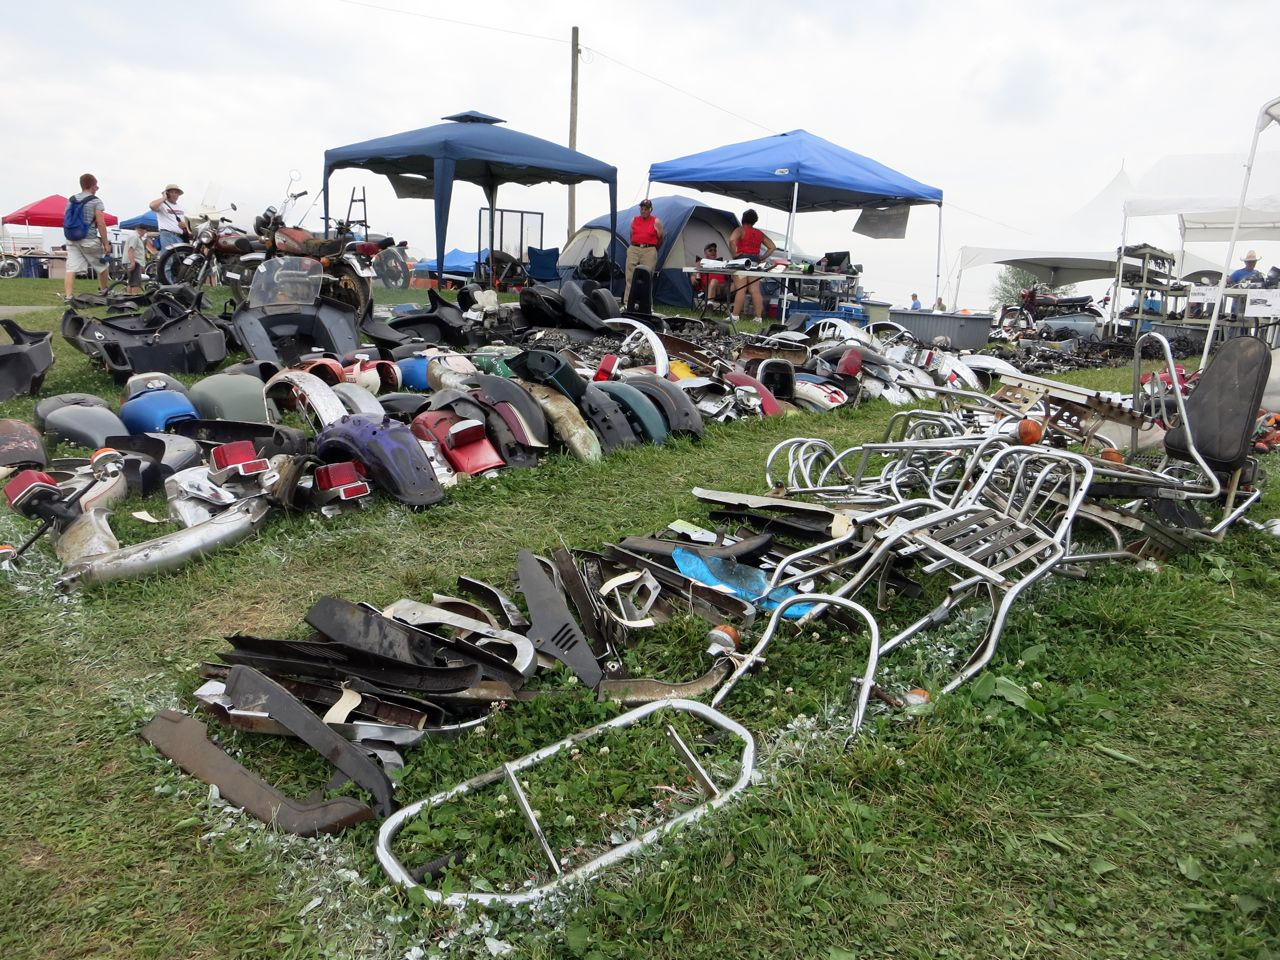 You can buy most anything from a vintage bike to hard to find parts